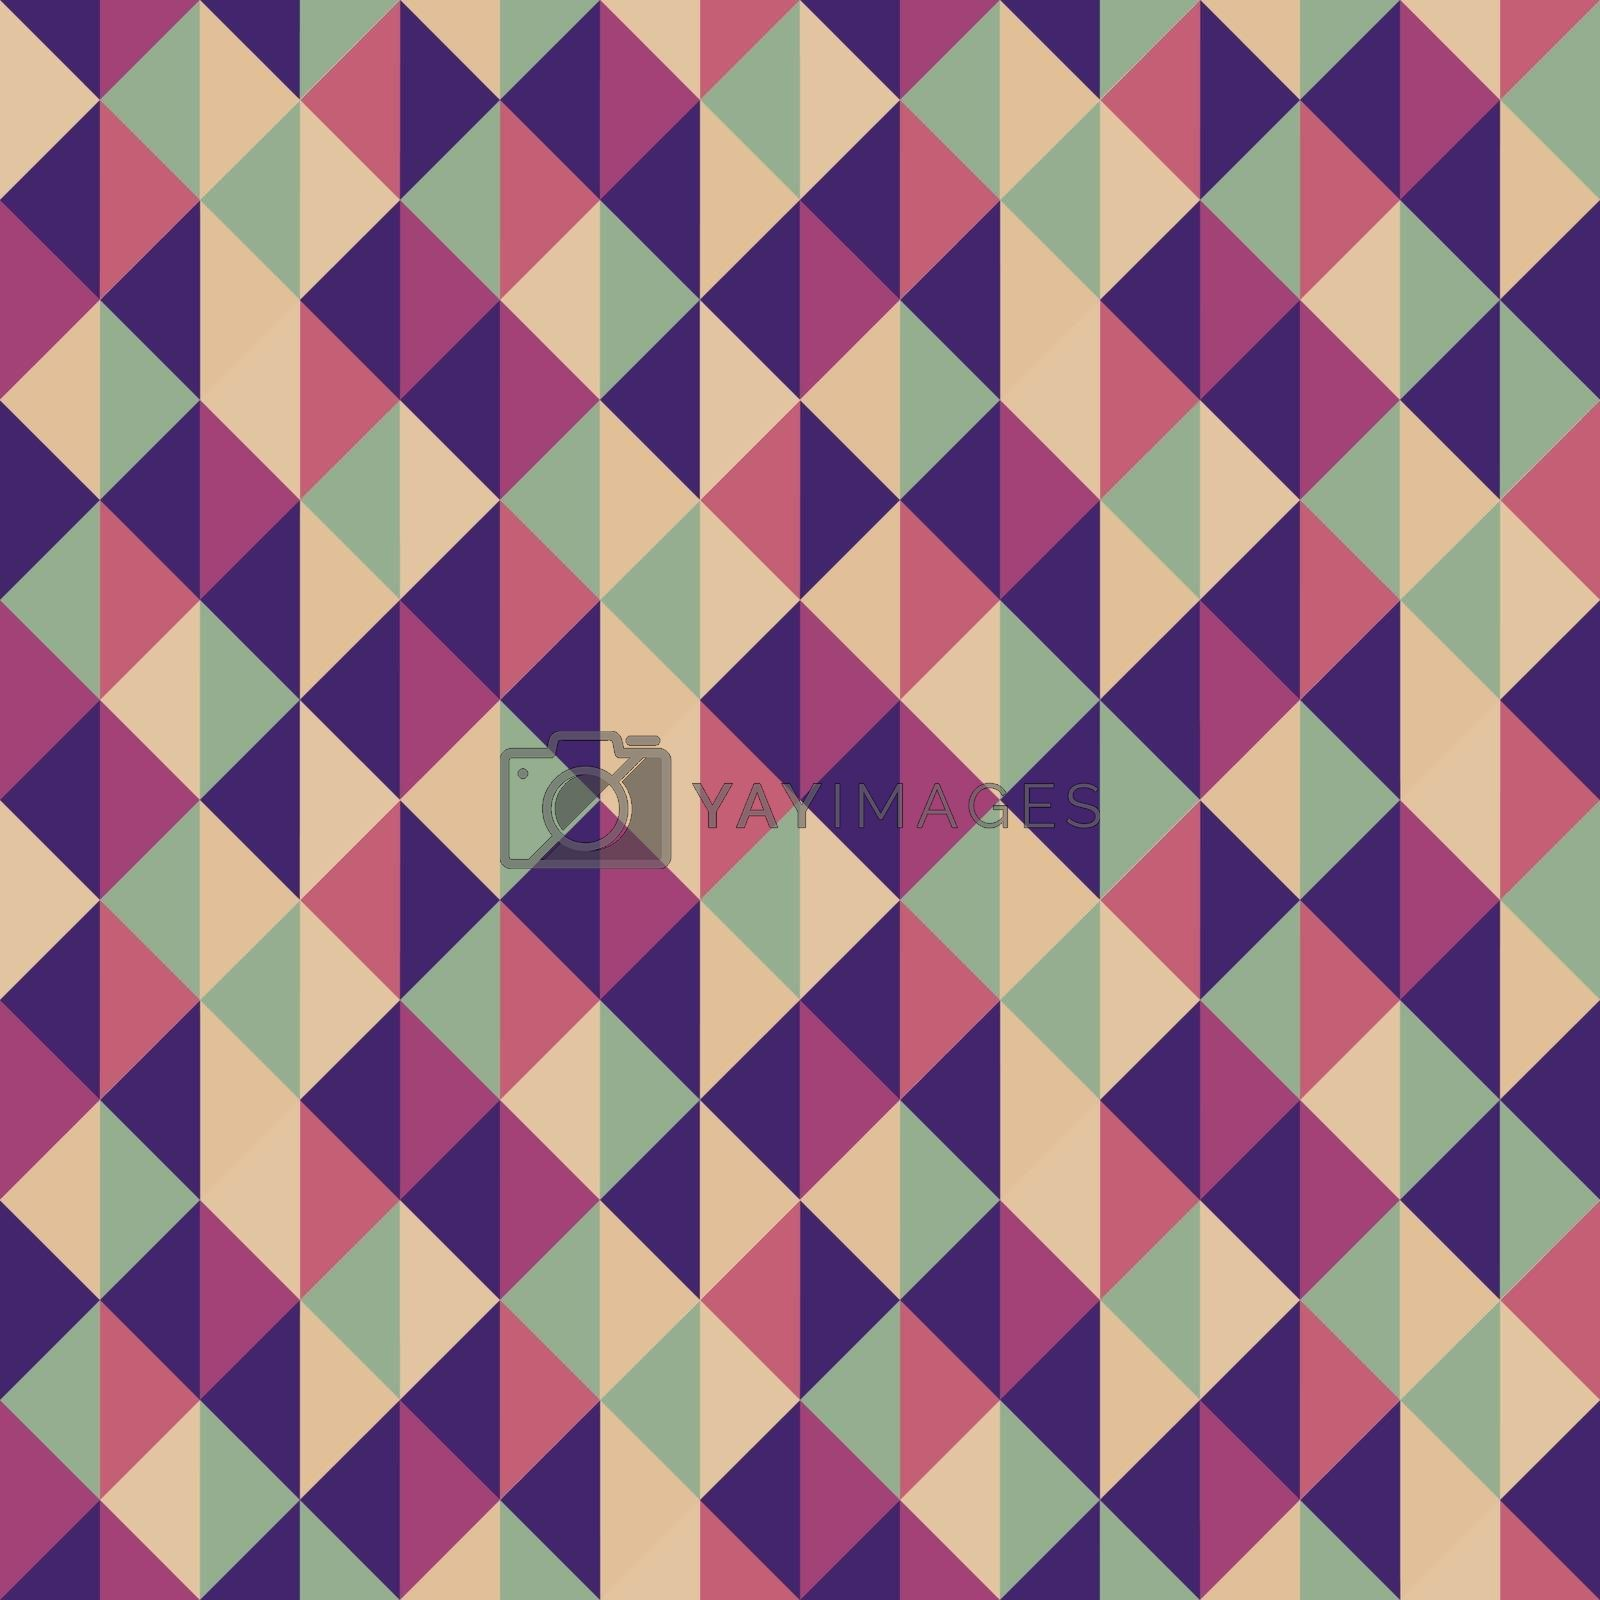 Geometric Triangles Background. Mosaic Vector Illustration. Can Be Used For Design And Presentation.